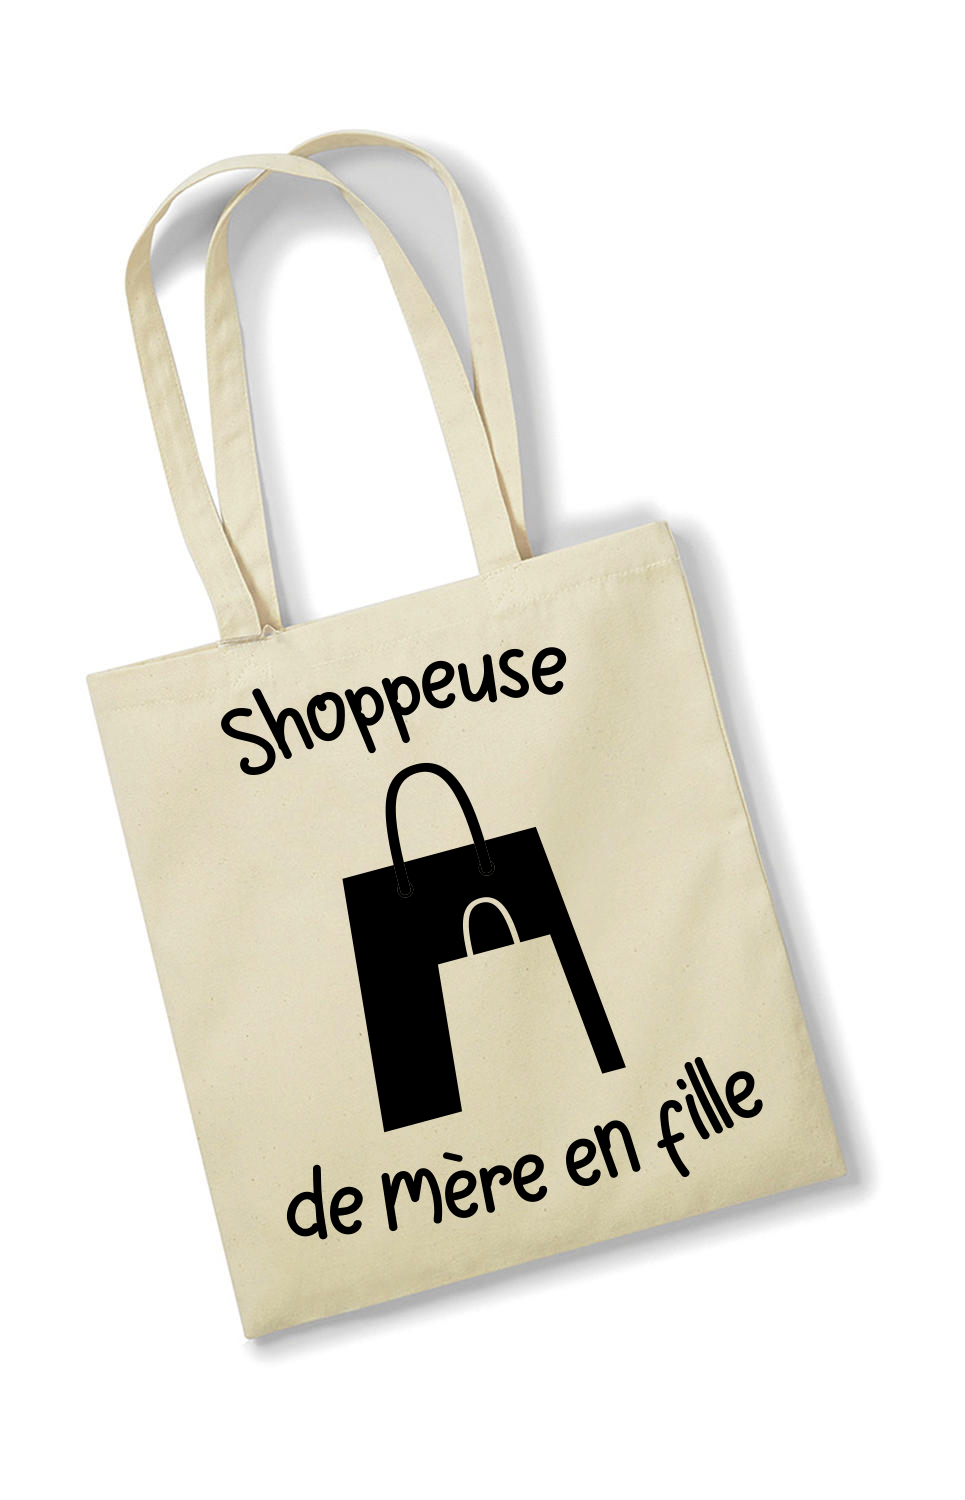 Tote bag Shoppeuse de mère en fille